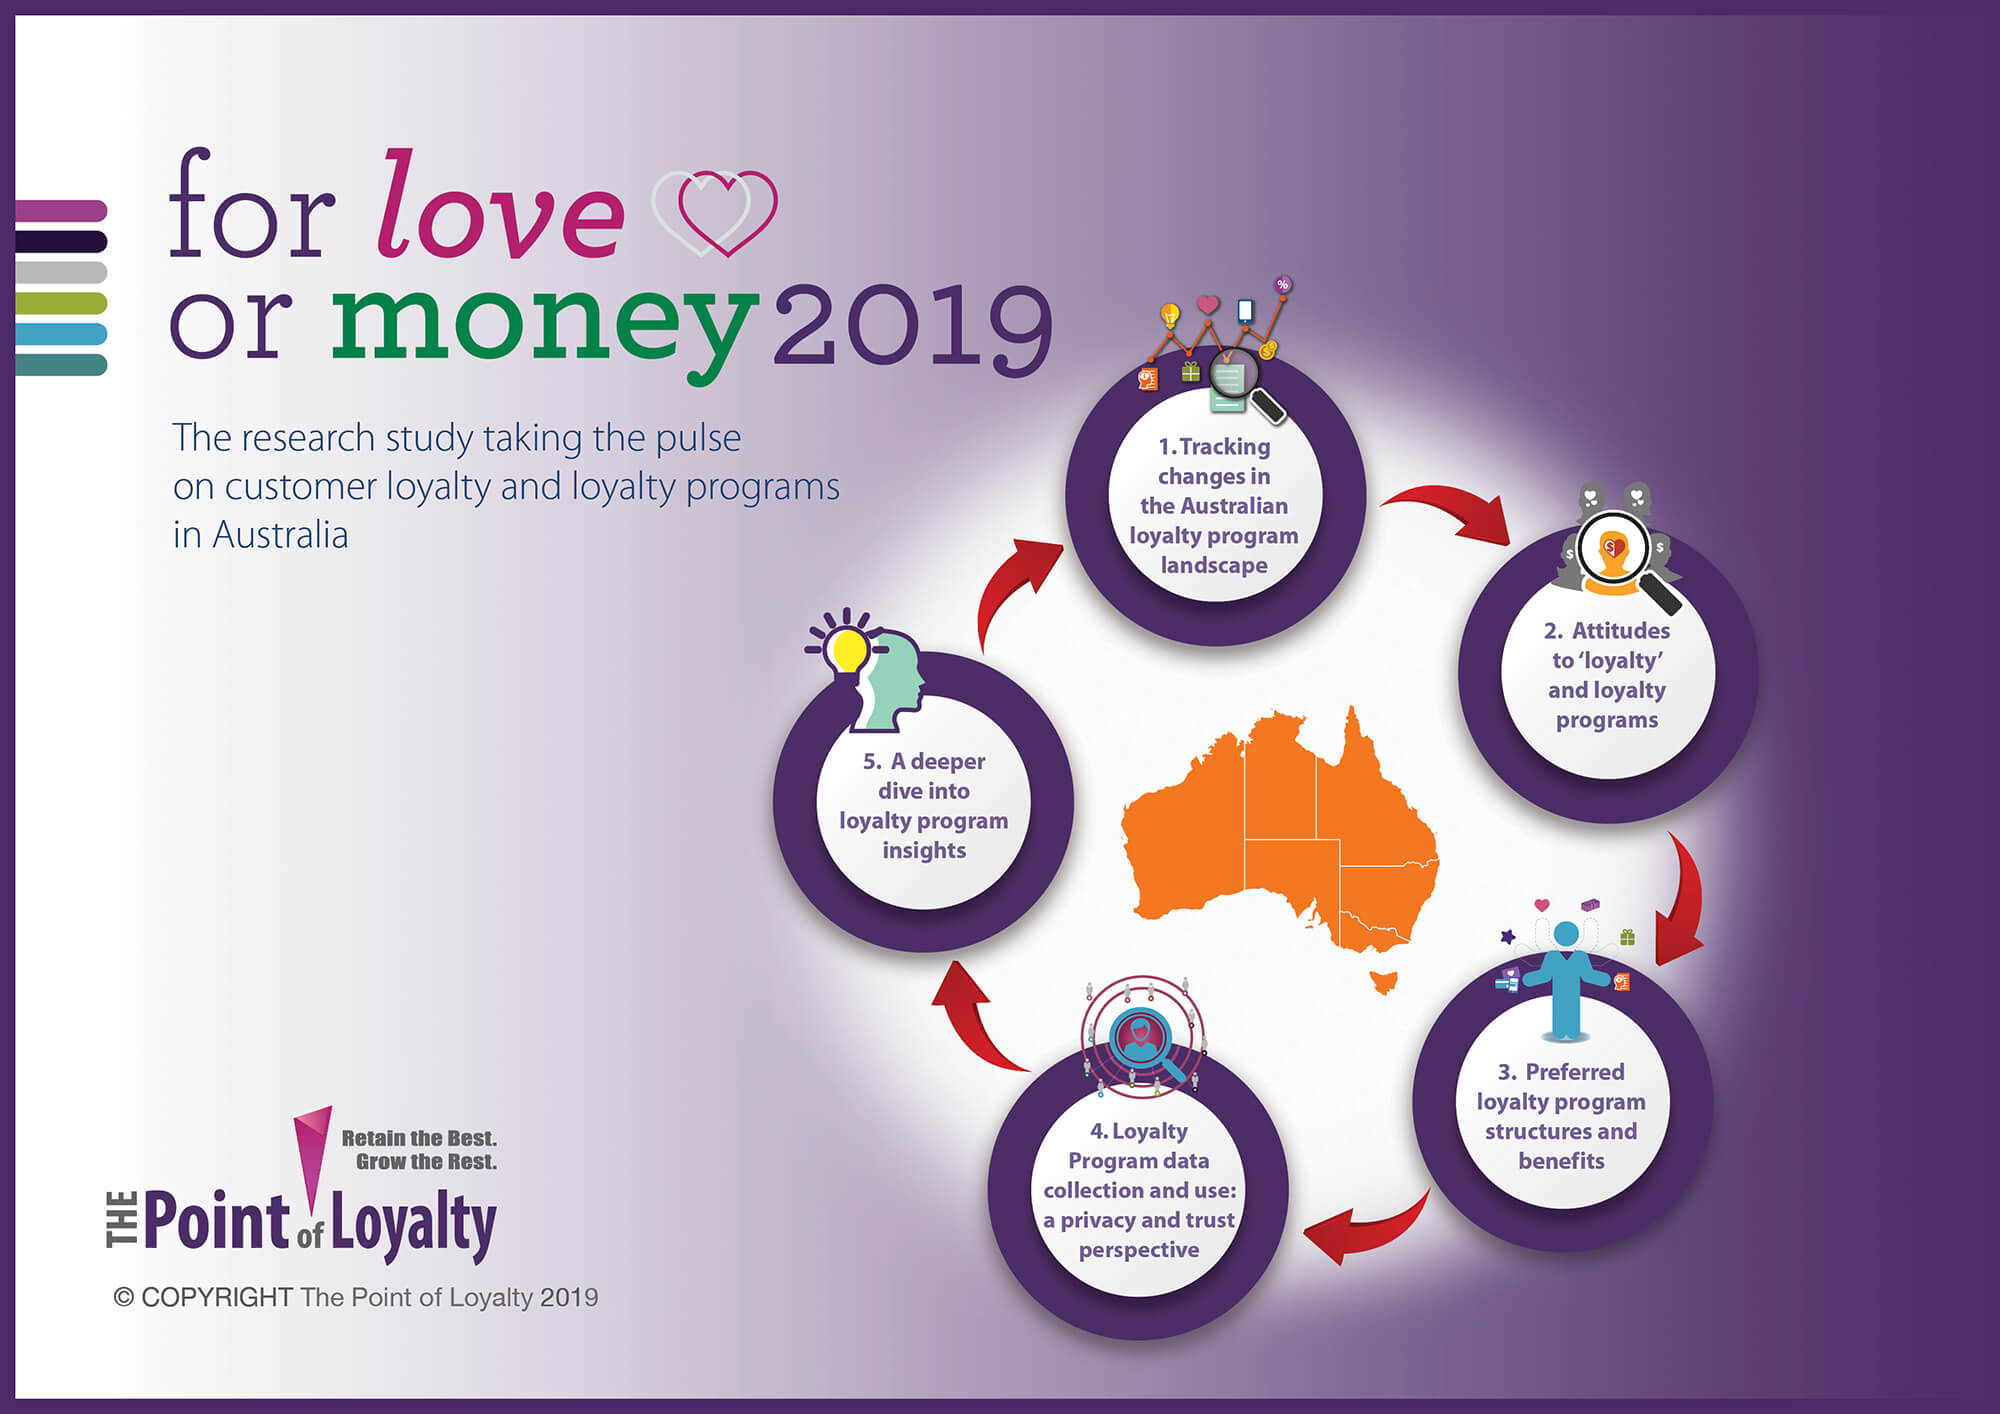 For Love or Money - Australia